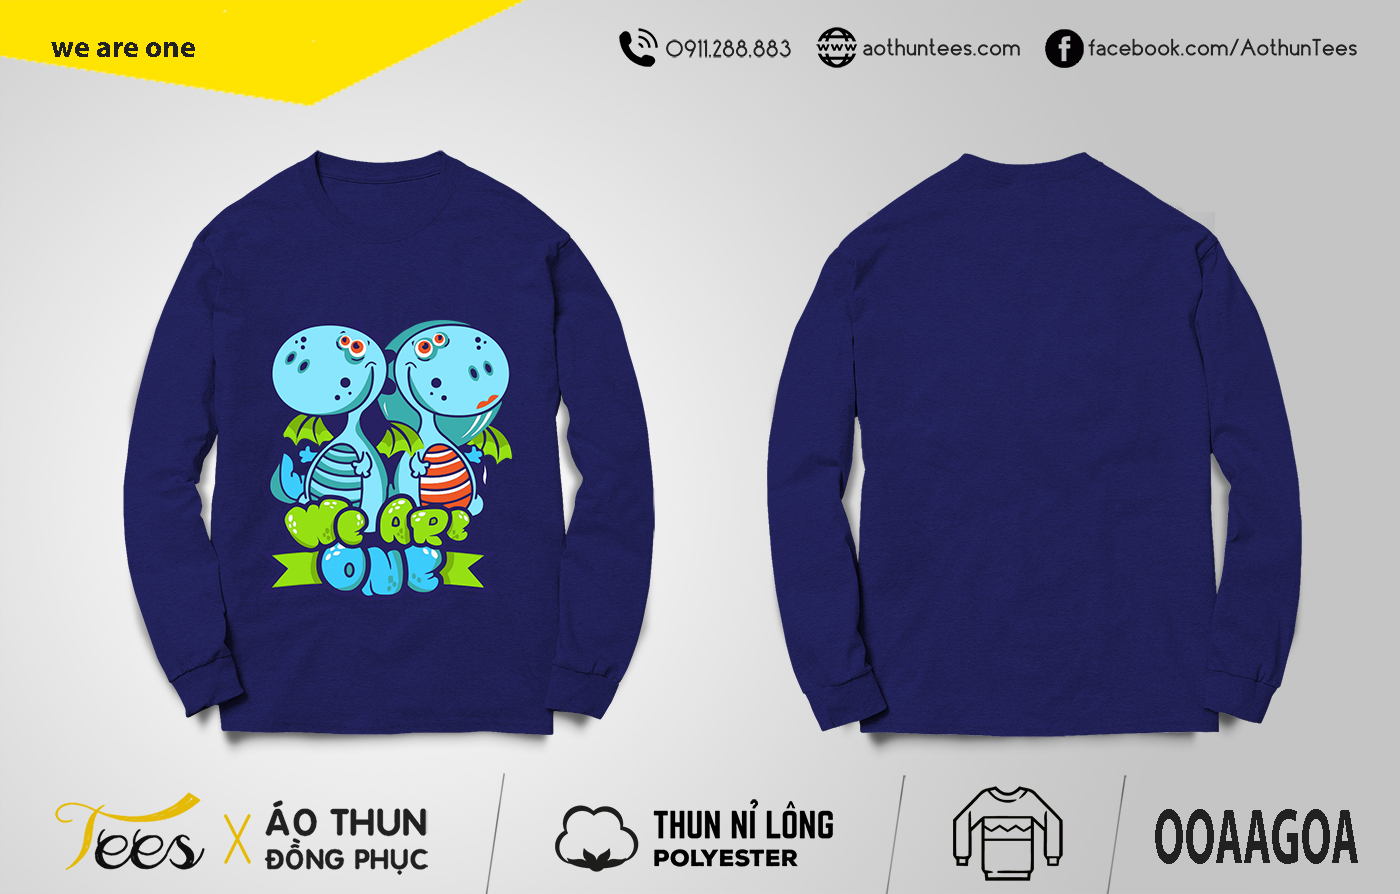 we are one1 - Áo sweater nhóm We are one